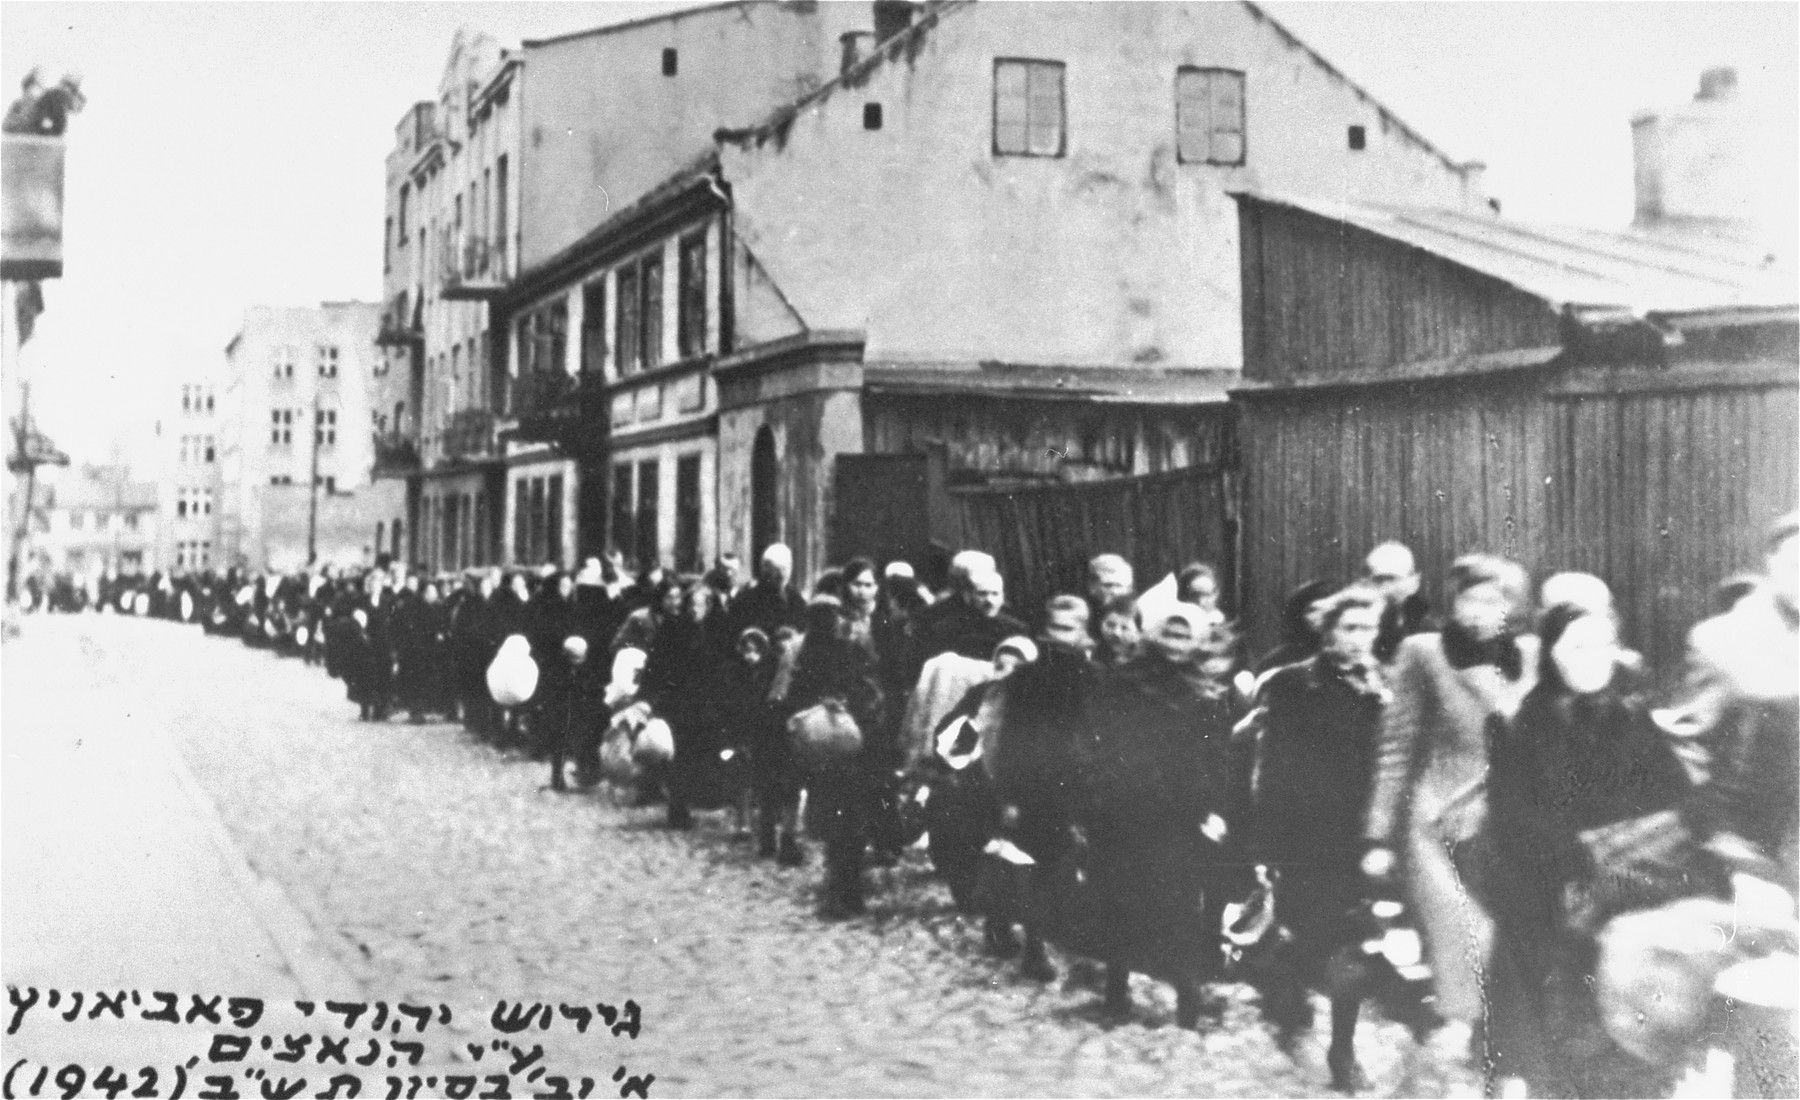 A long column of Jews marches through the streets of Pabianice during a deportation action.